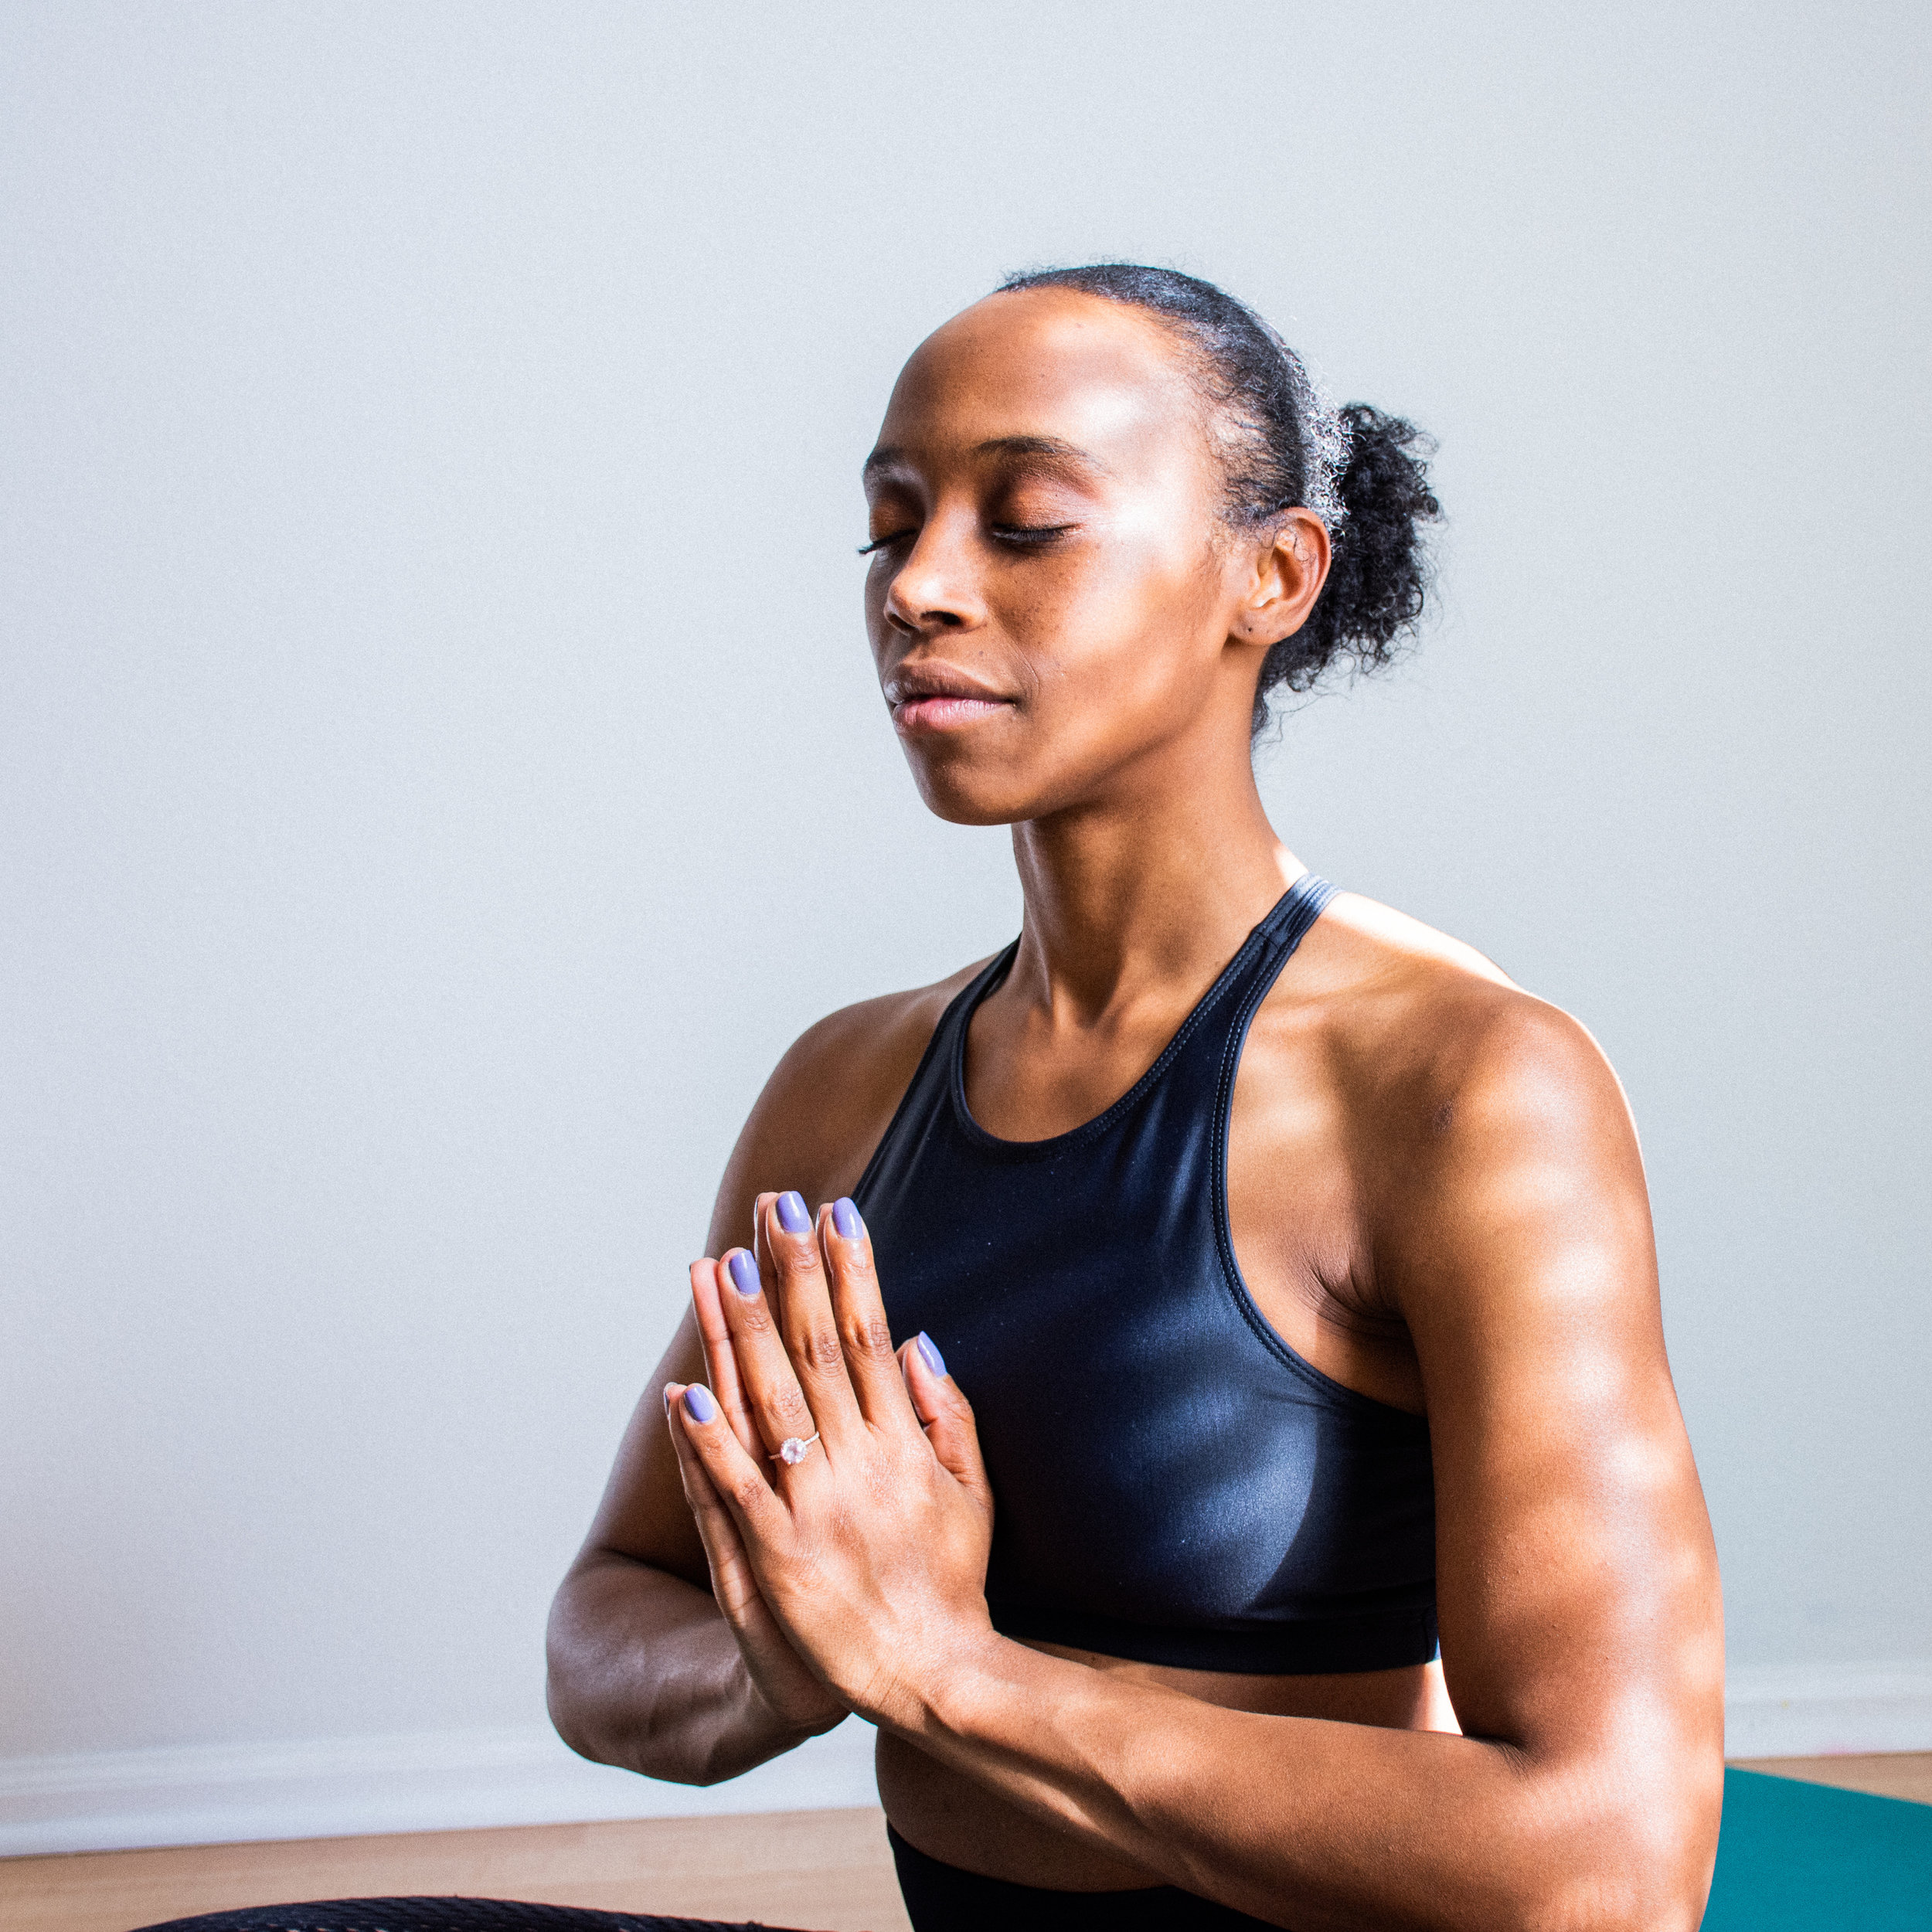 The Mindful Athlete - Learning to be fully present on the path of performance